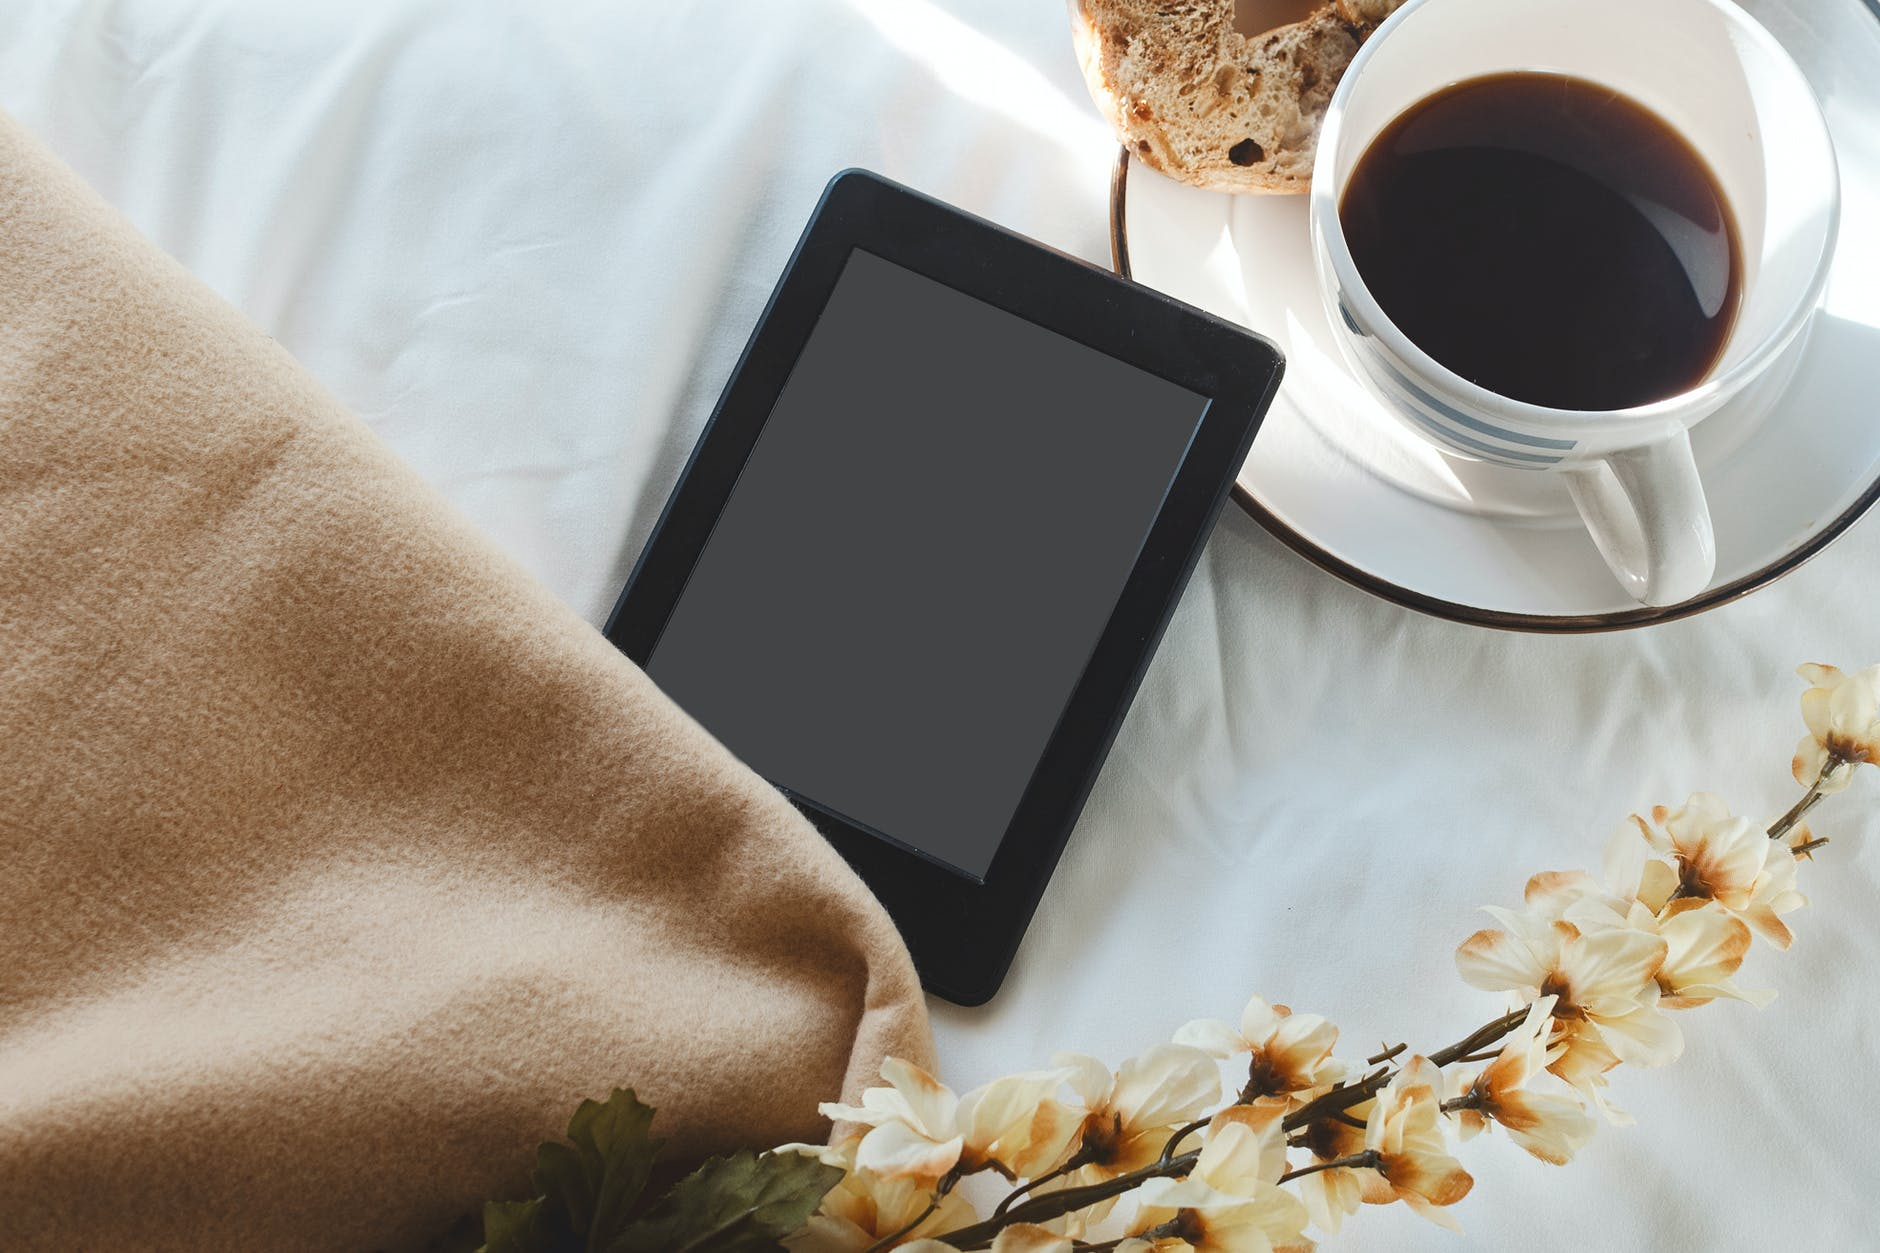 Change the name of your Kindle